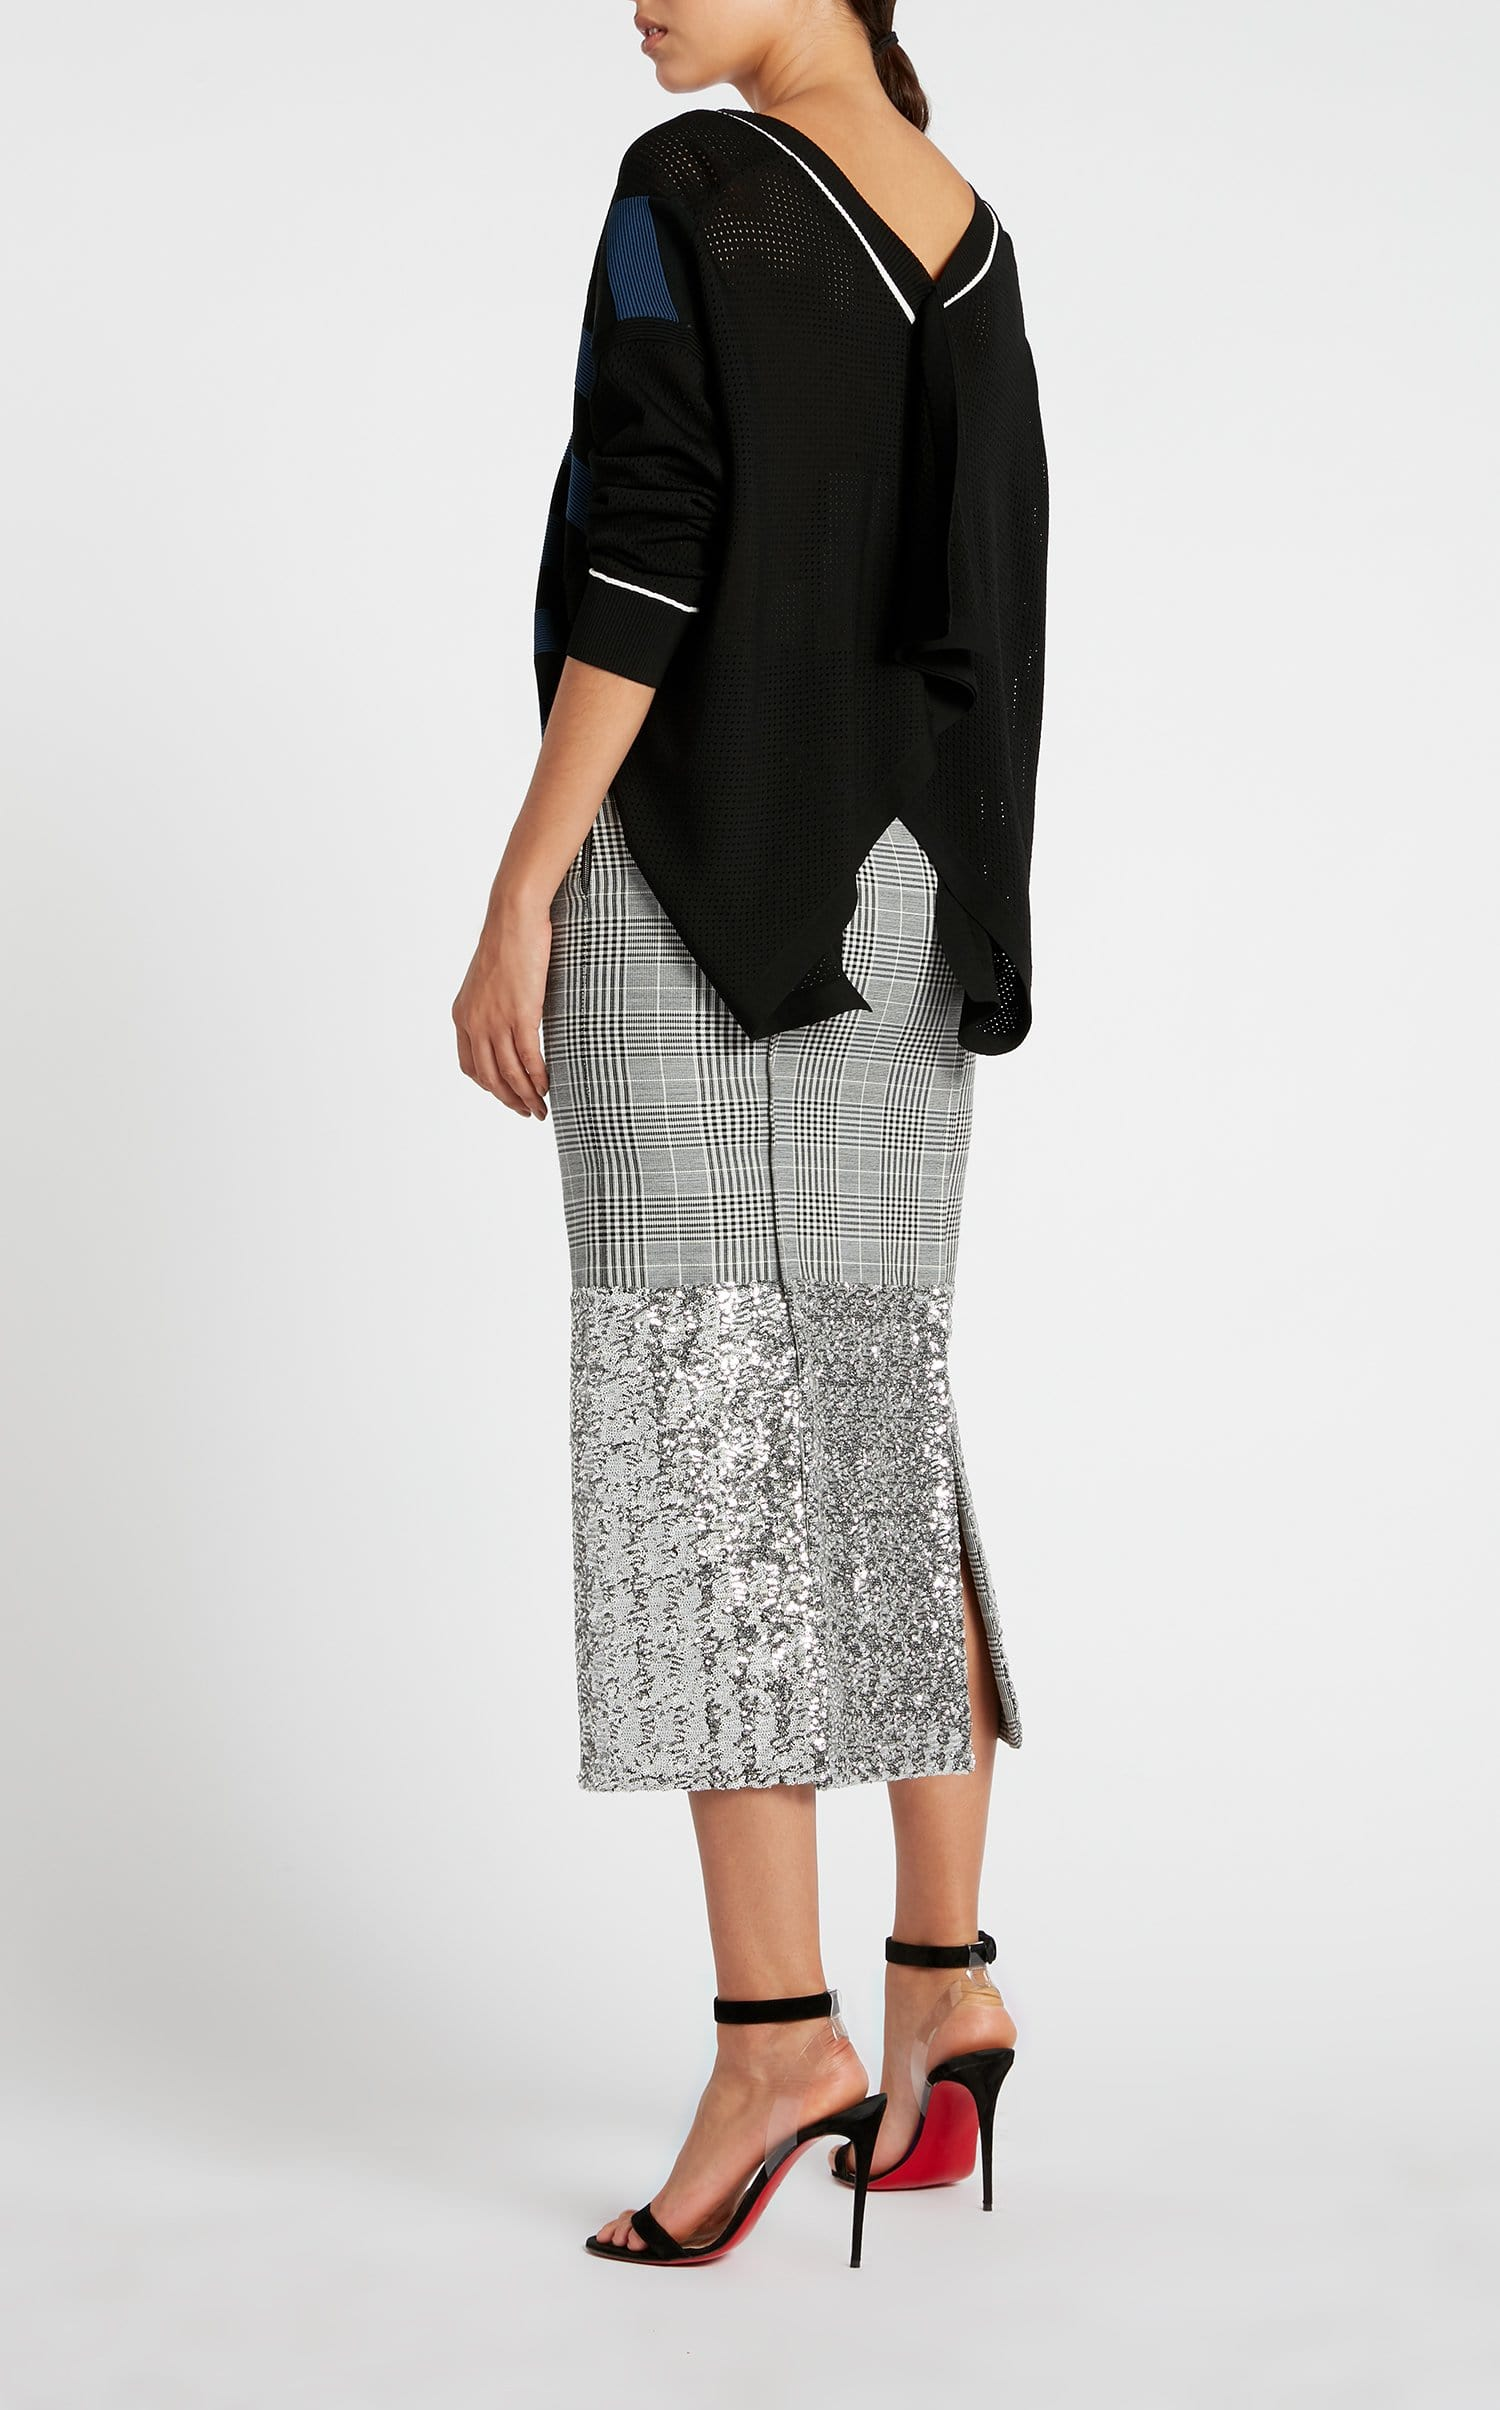 Abrams Skirt In Monochrome/Silver from Roland Mouret